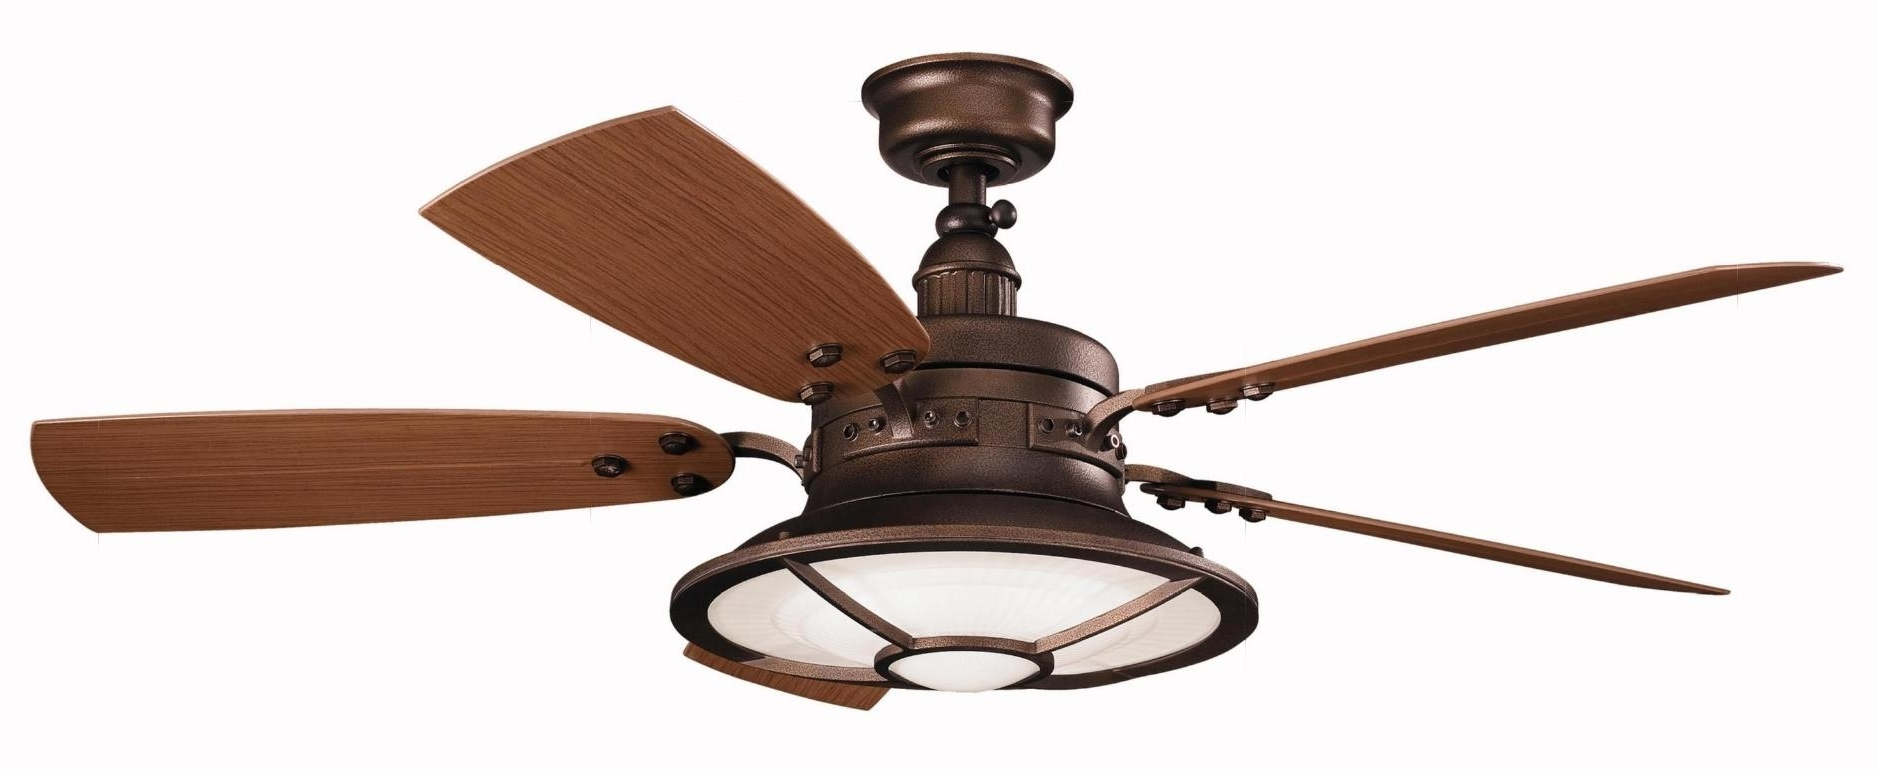 Most Current Kichler Outdoor Ceiling Fans With Lights Within Light : Kichler Fan Led Lighting Ceiling Fans Waterproof Outdoor (View 15 of 20)